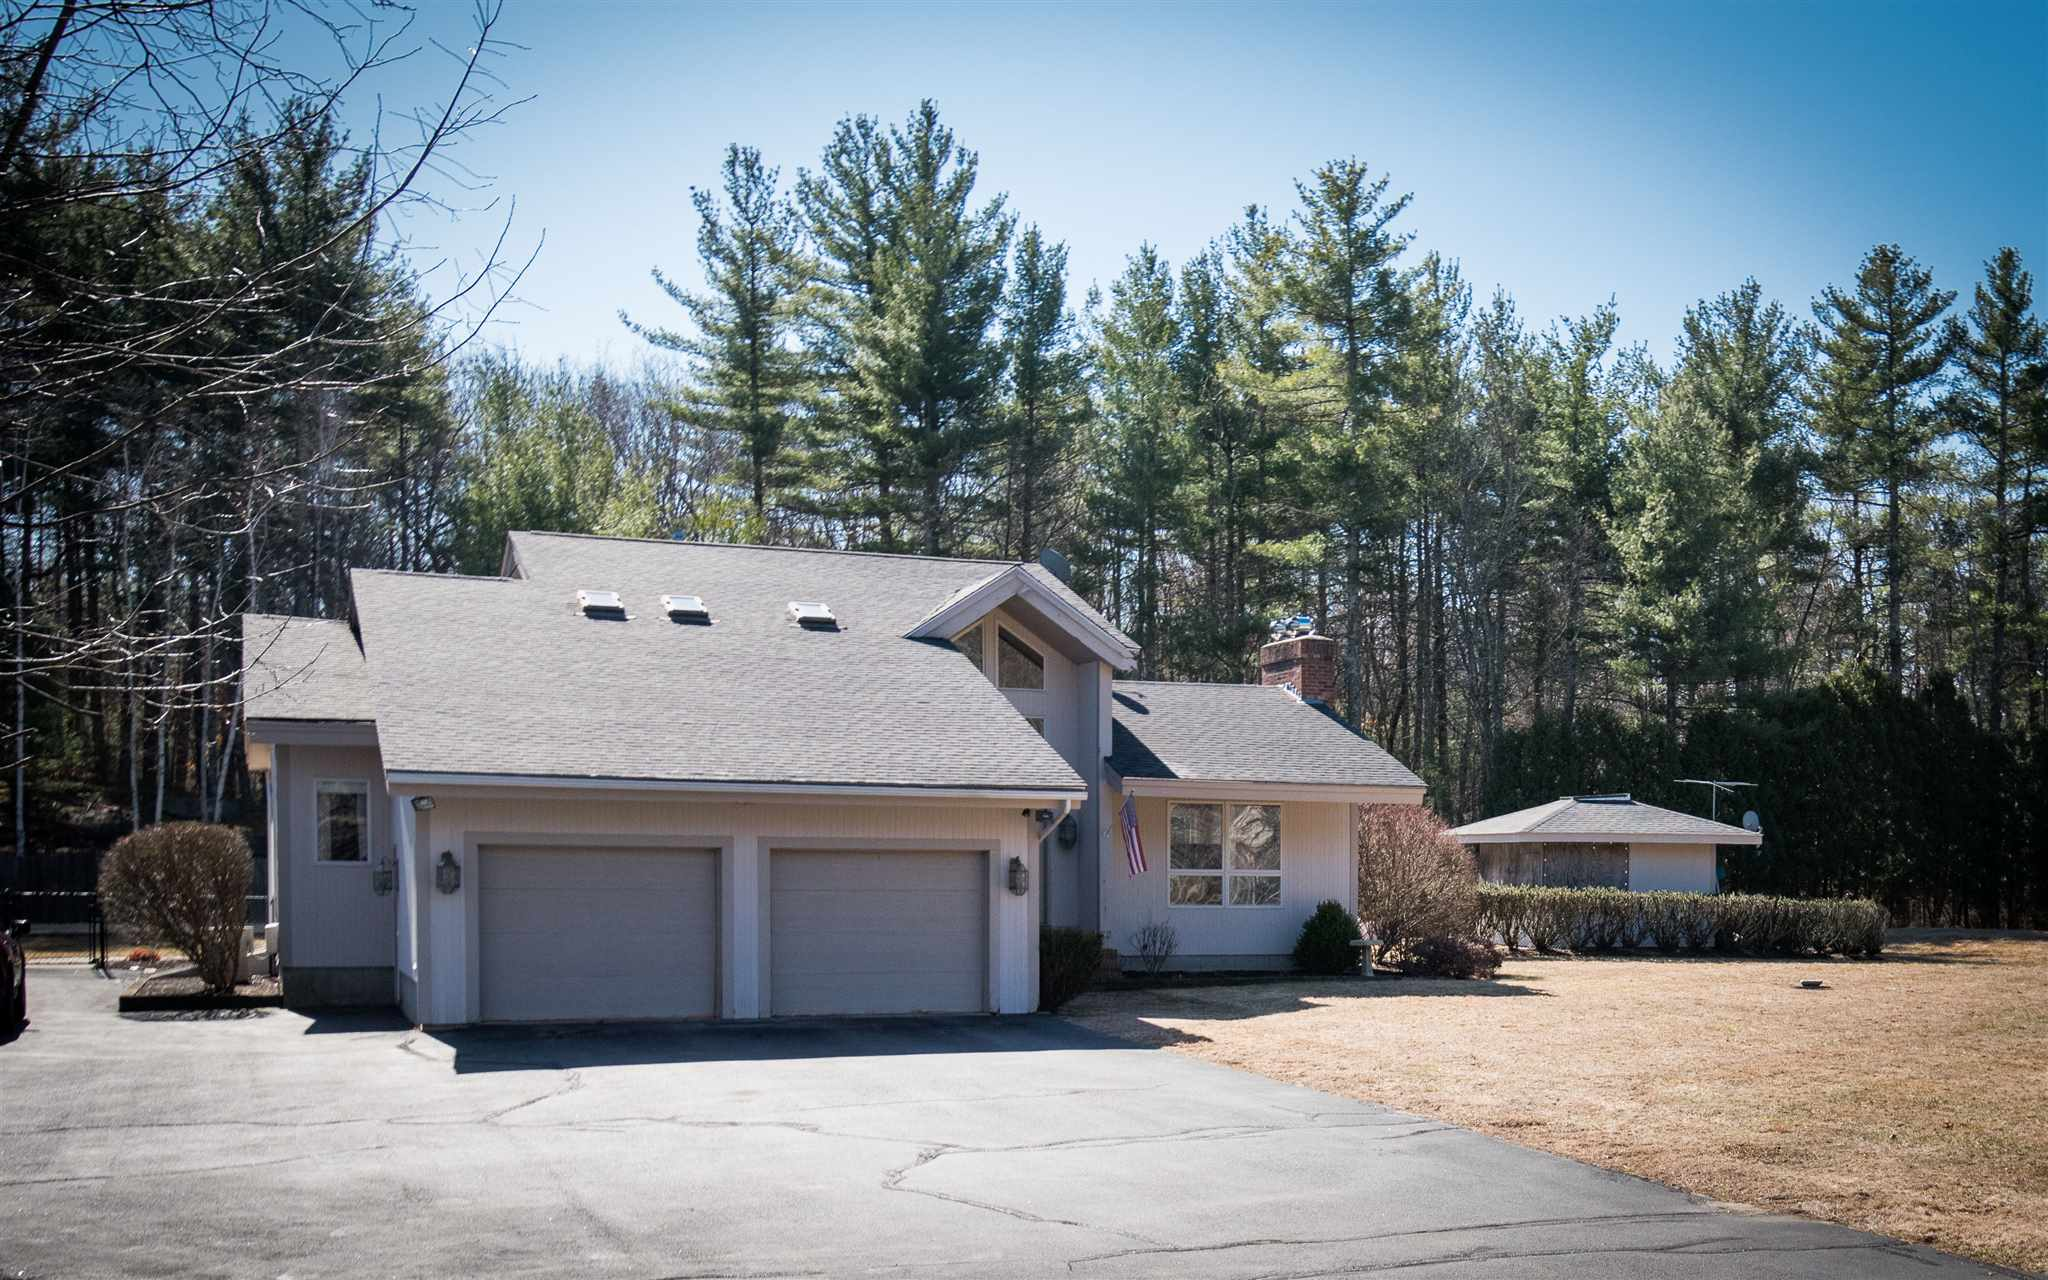 MLS 4798518: 4 Aladdin Road, Windham NH